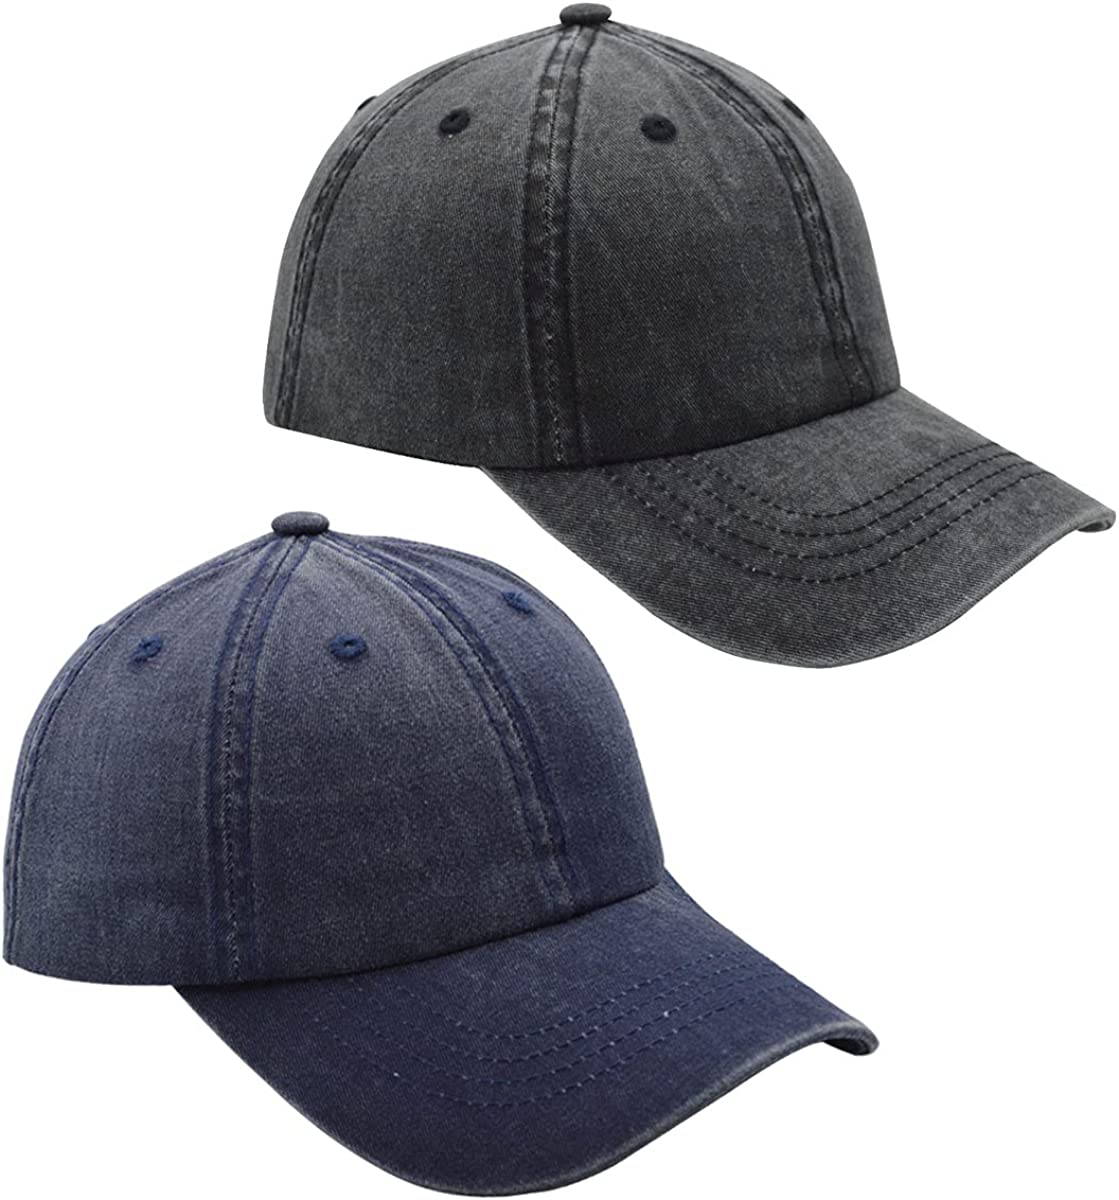 FWMhat Pack of 2 Washed Distressed 100% free shipping Fort Worth Mall Cotton Baseball Hats Uni